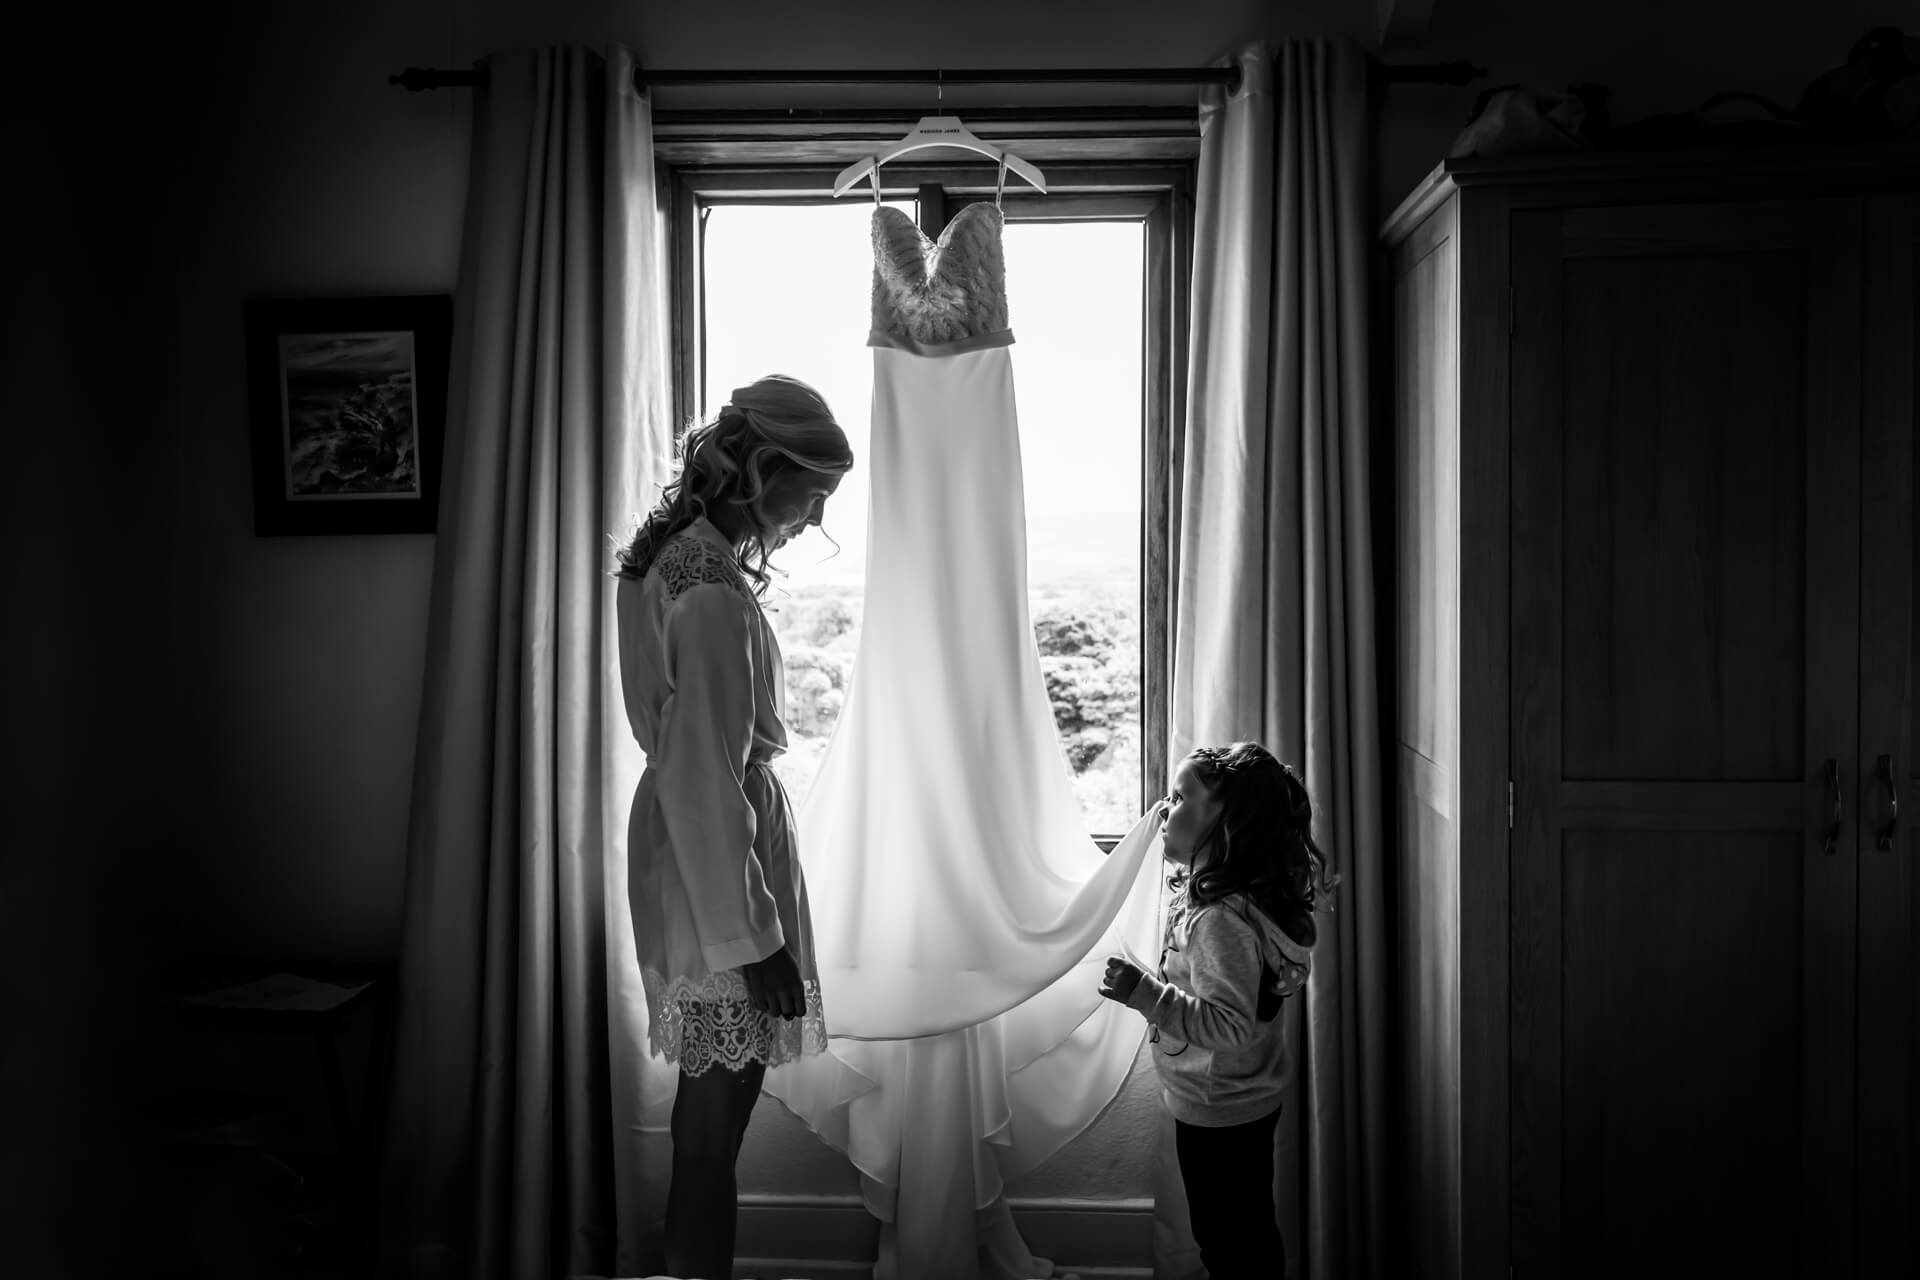 flower girl holding the brides dress in from of a window and talking to the bride